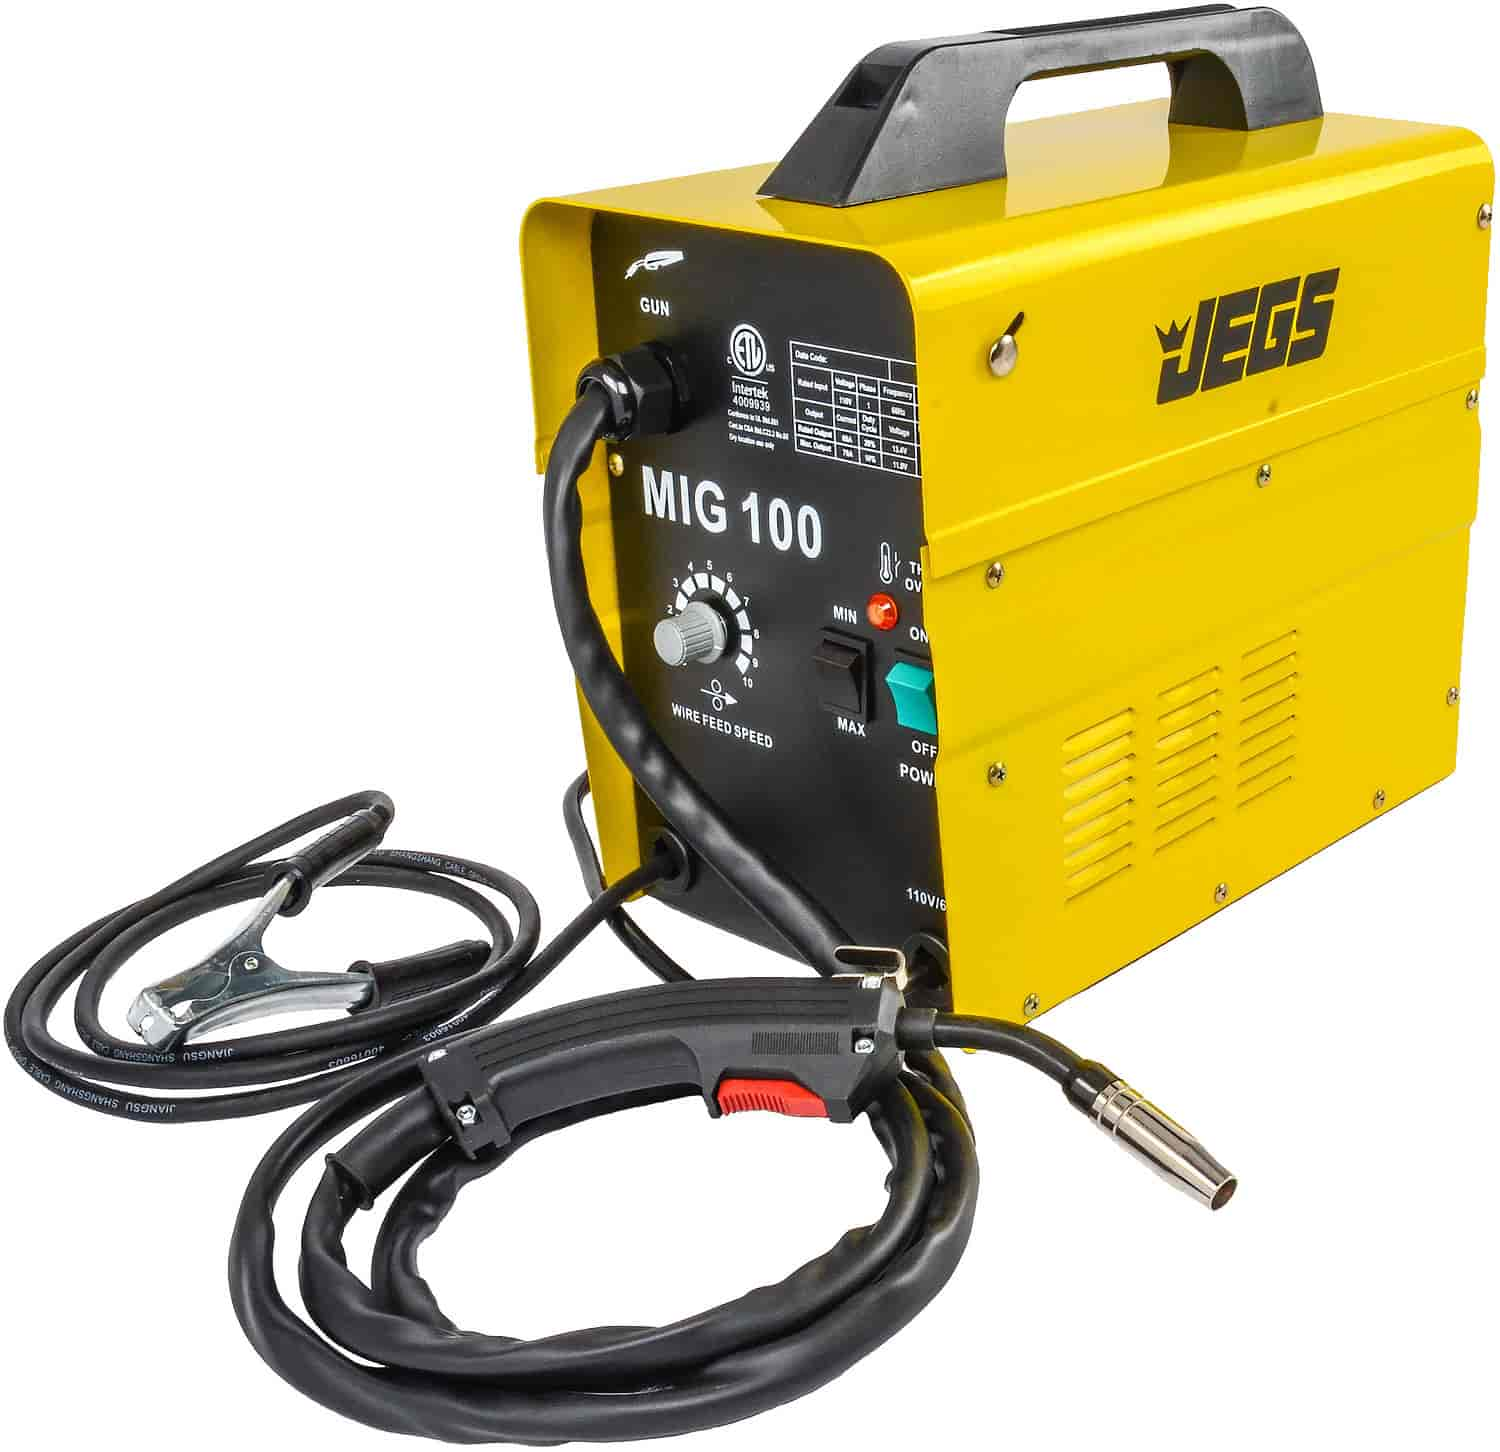 mig welder wiring diagram vehicle diagrams for installing remote starters jegs performance products 81540 100 12657117789